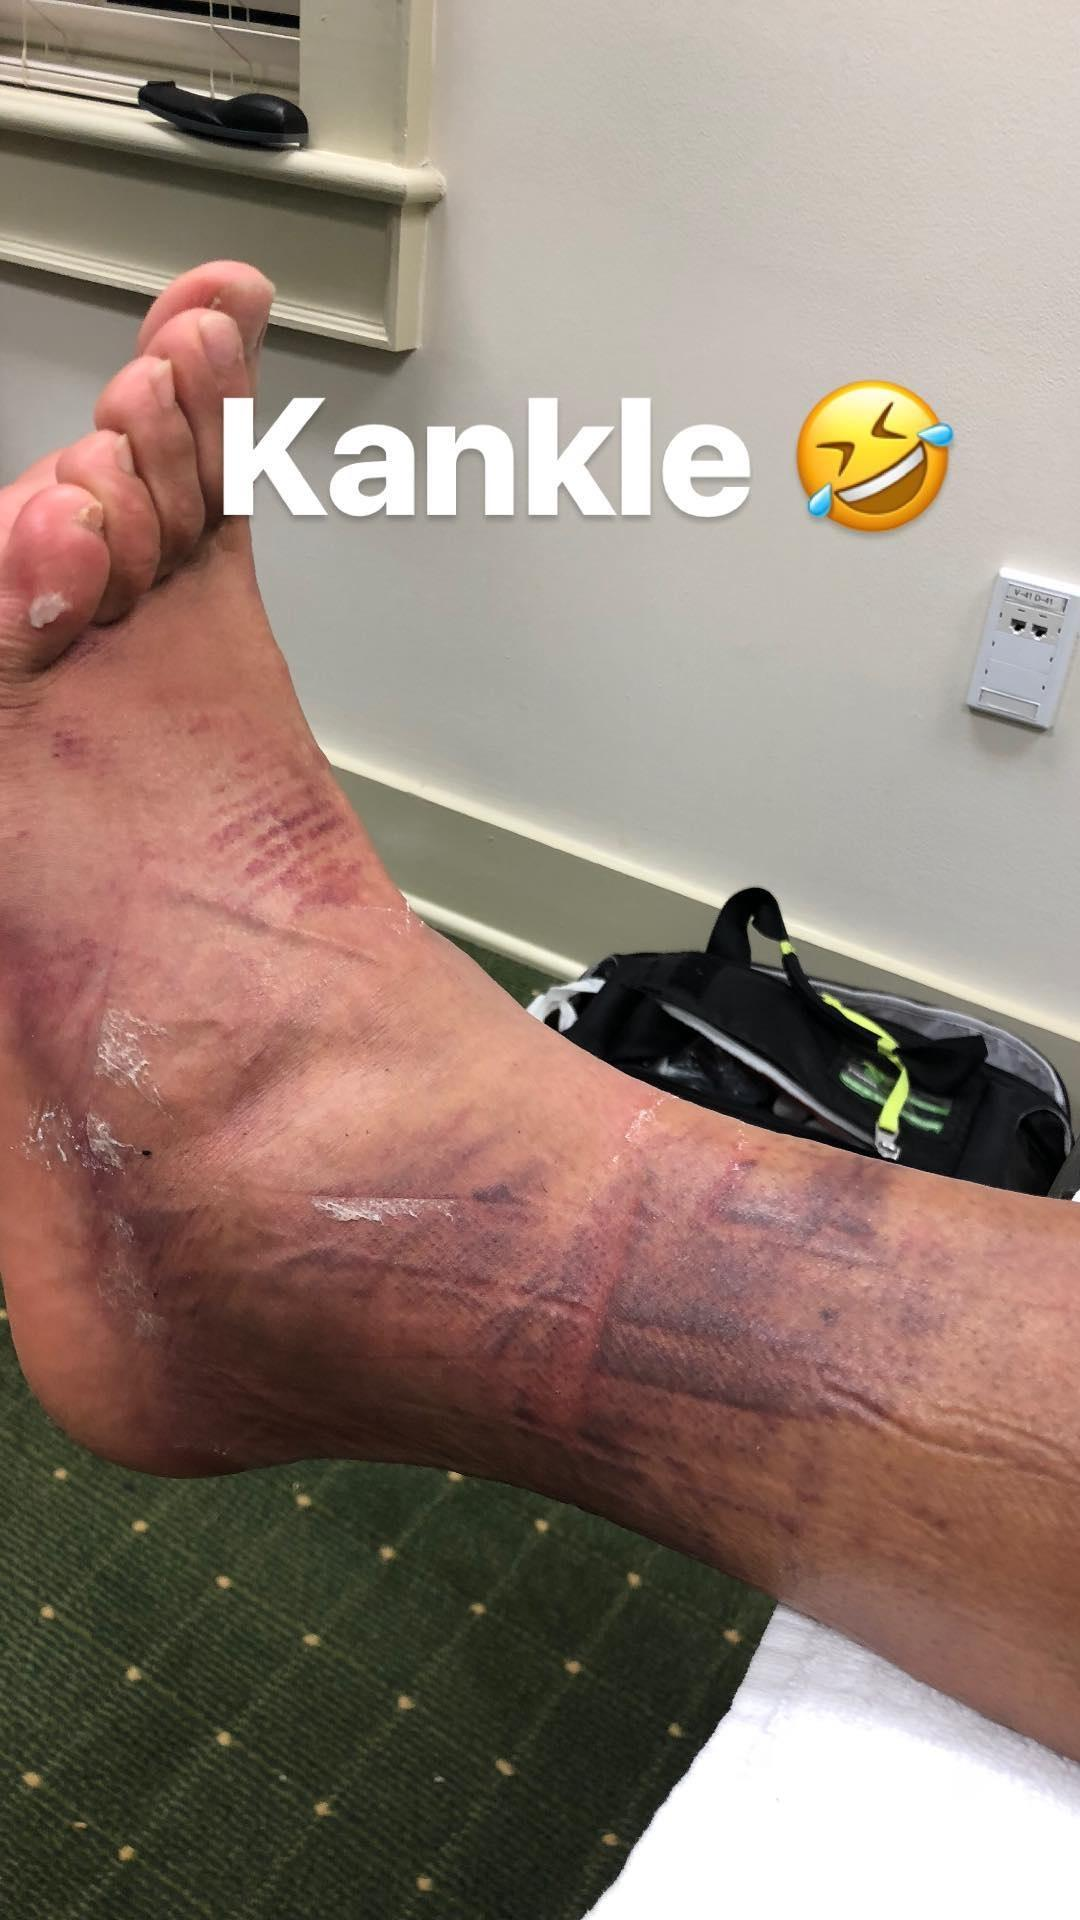 Tony Finau shows off the gruesome effects of his hole-in-one celebration